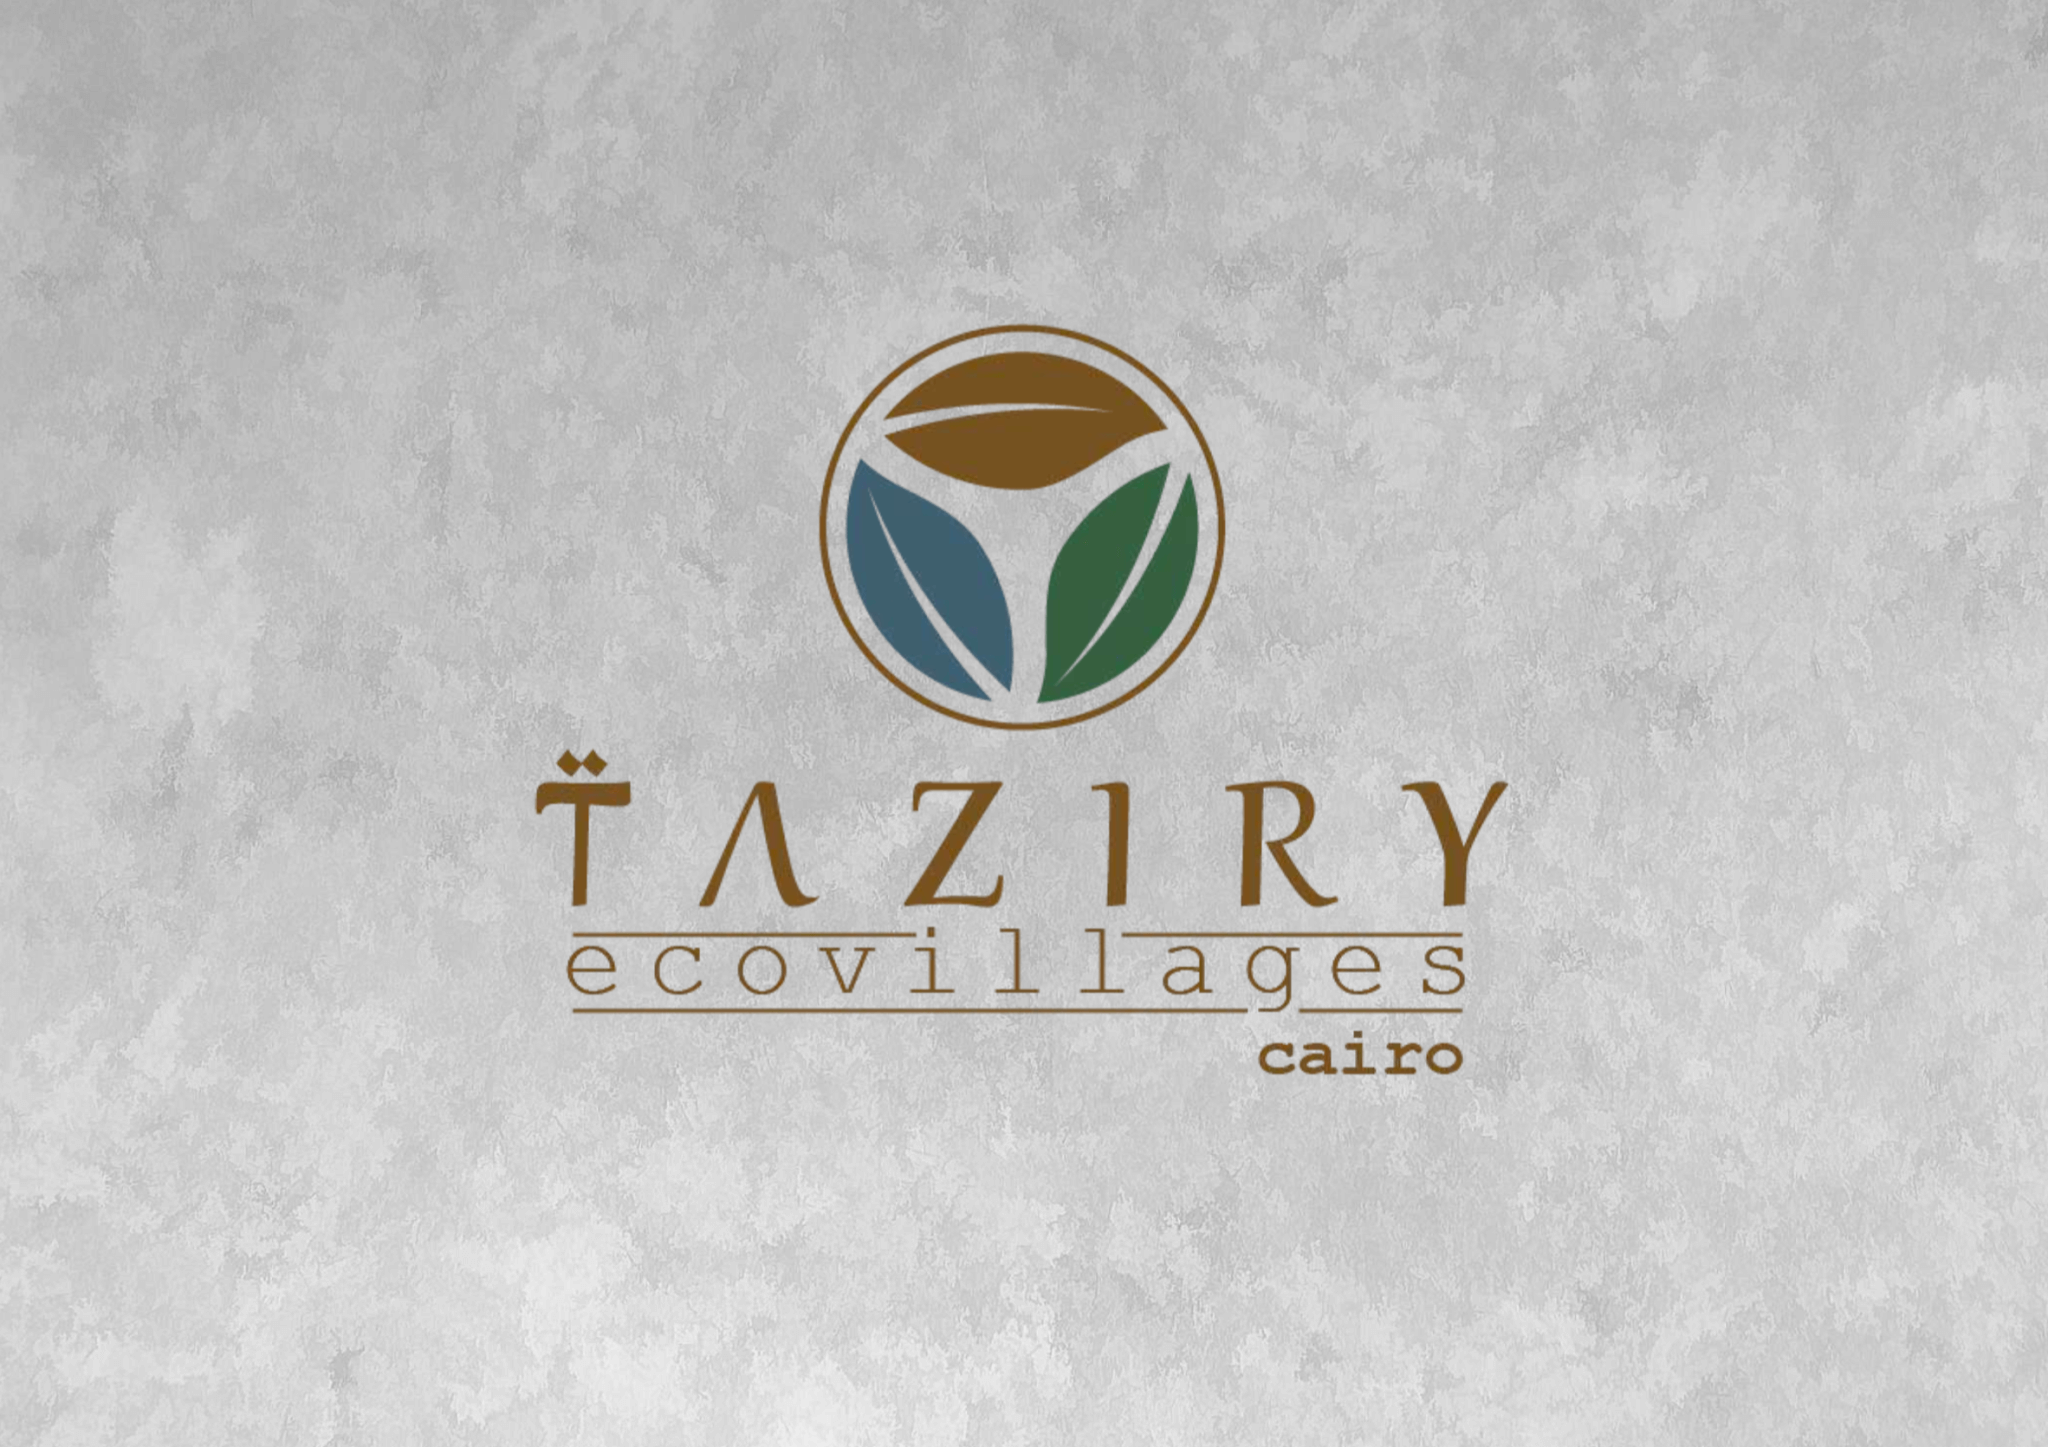 Taziry_ecovillages_Cairo